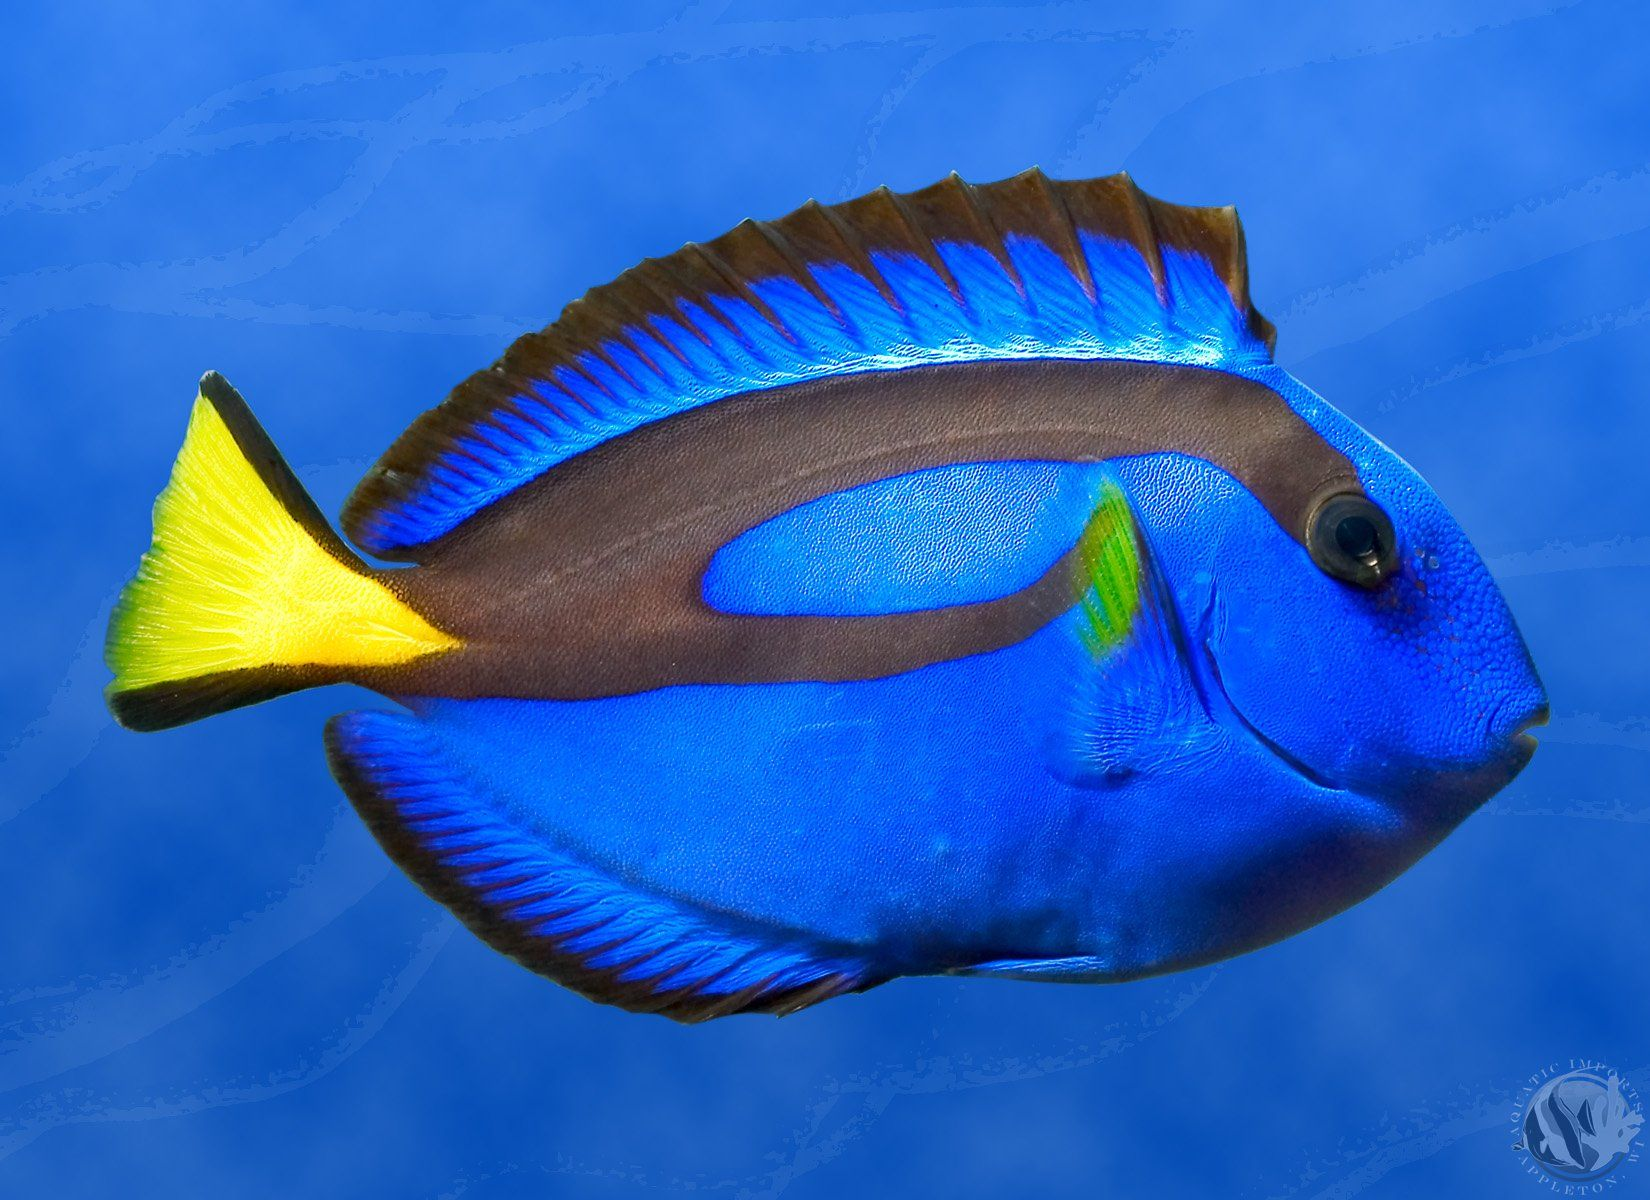 blue tang a popular fish in marine aquaria a number of